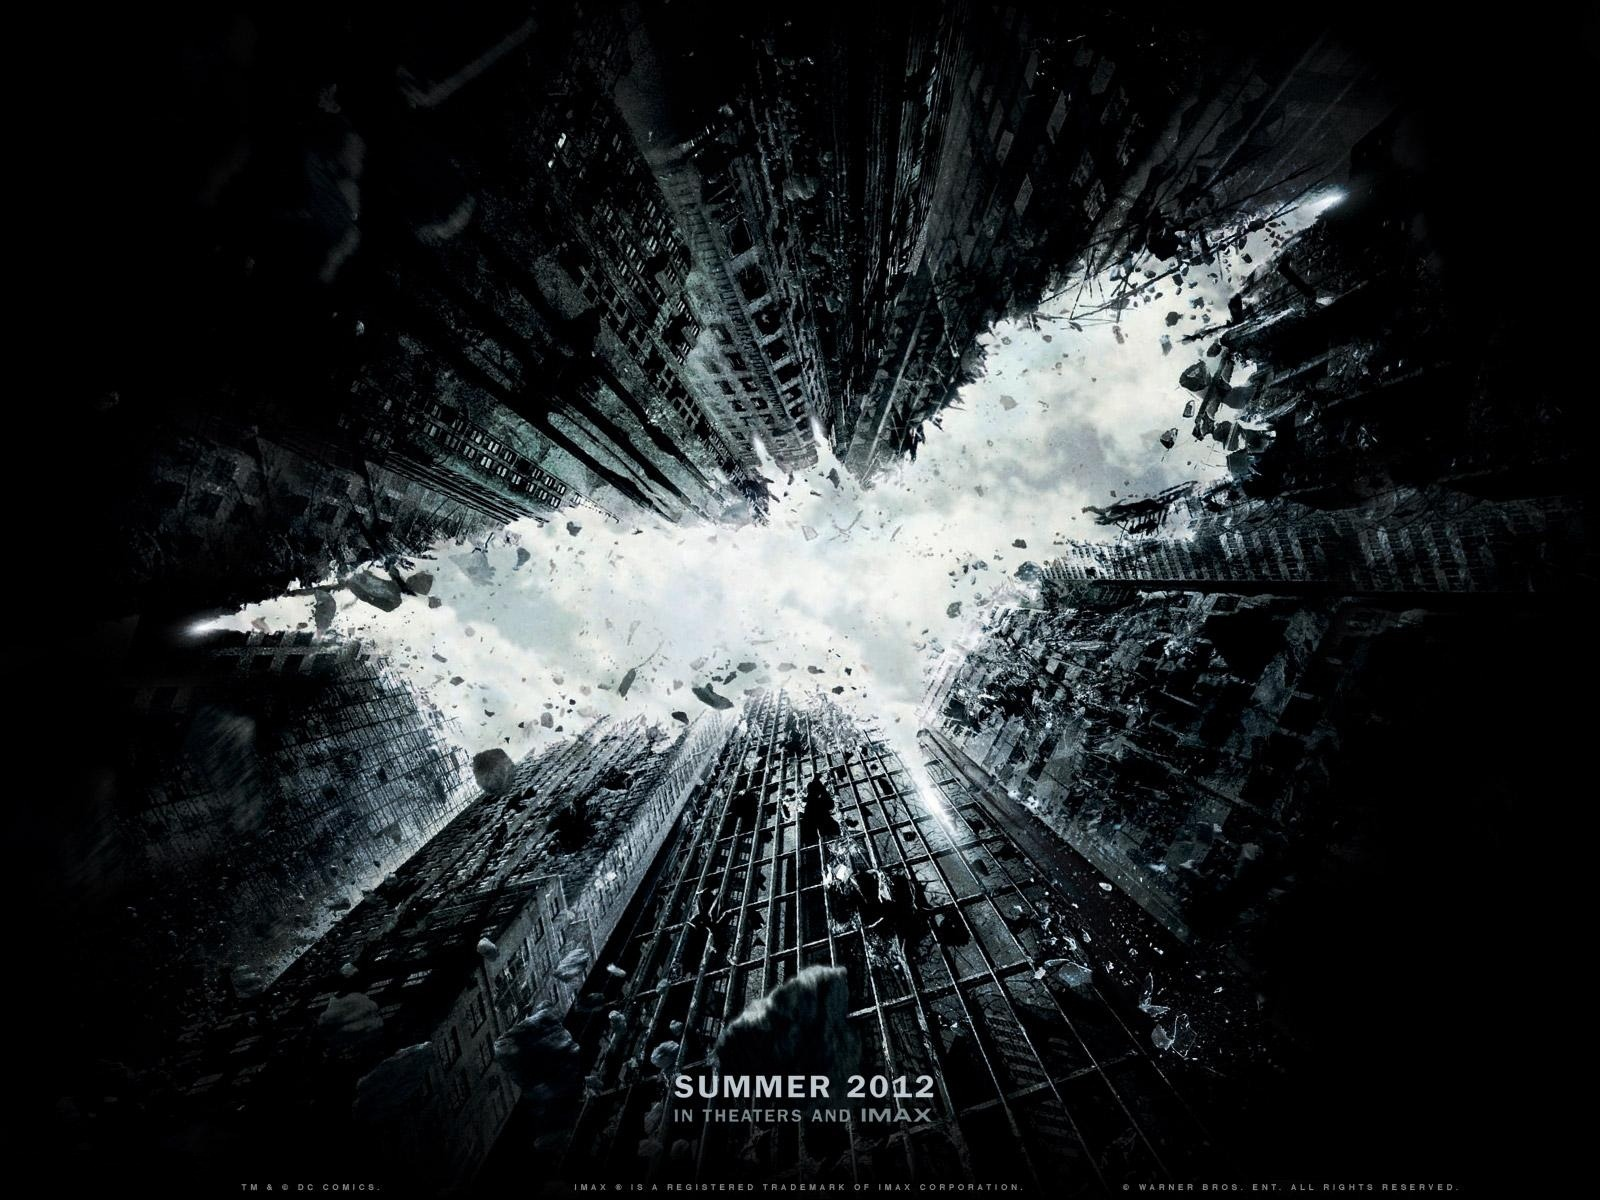 THE DARK KNIGHT RISES Trailer 2.flv